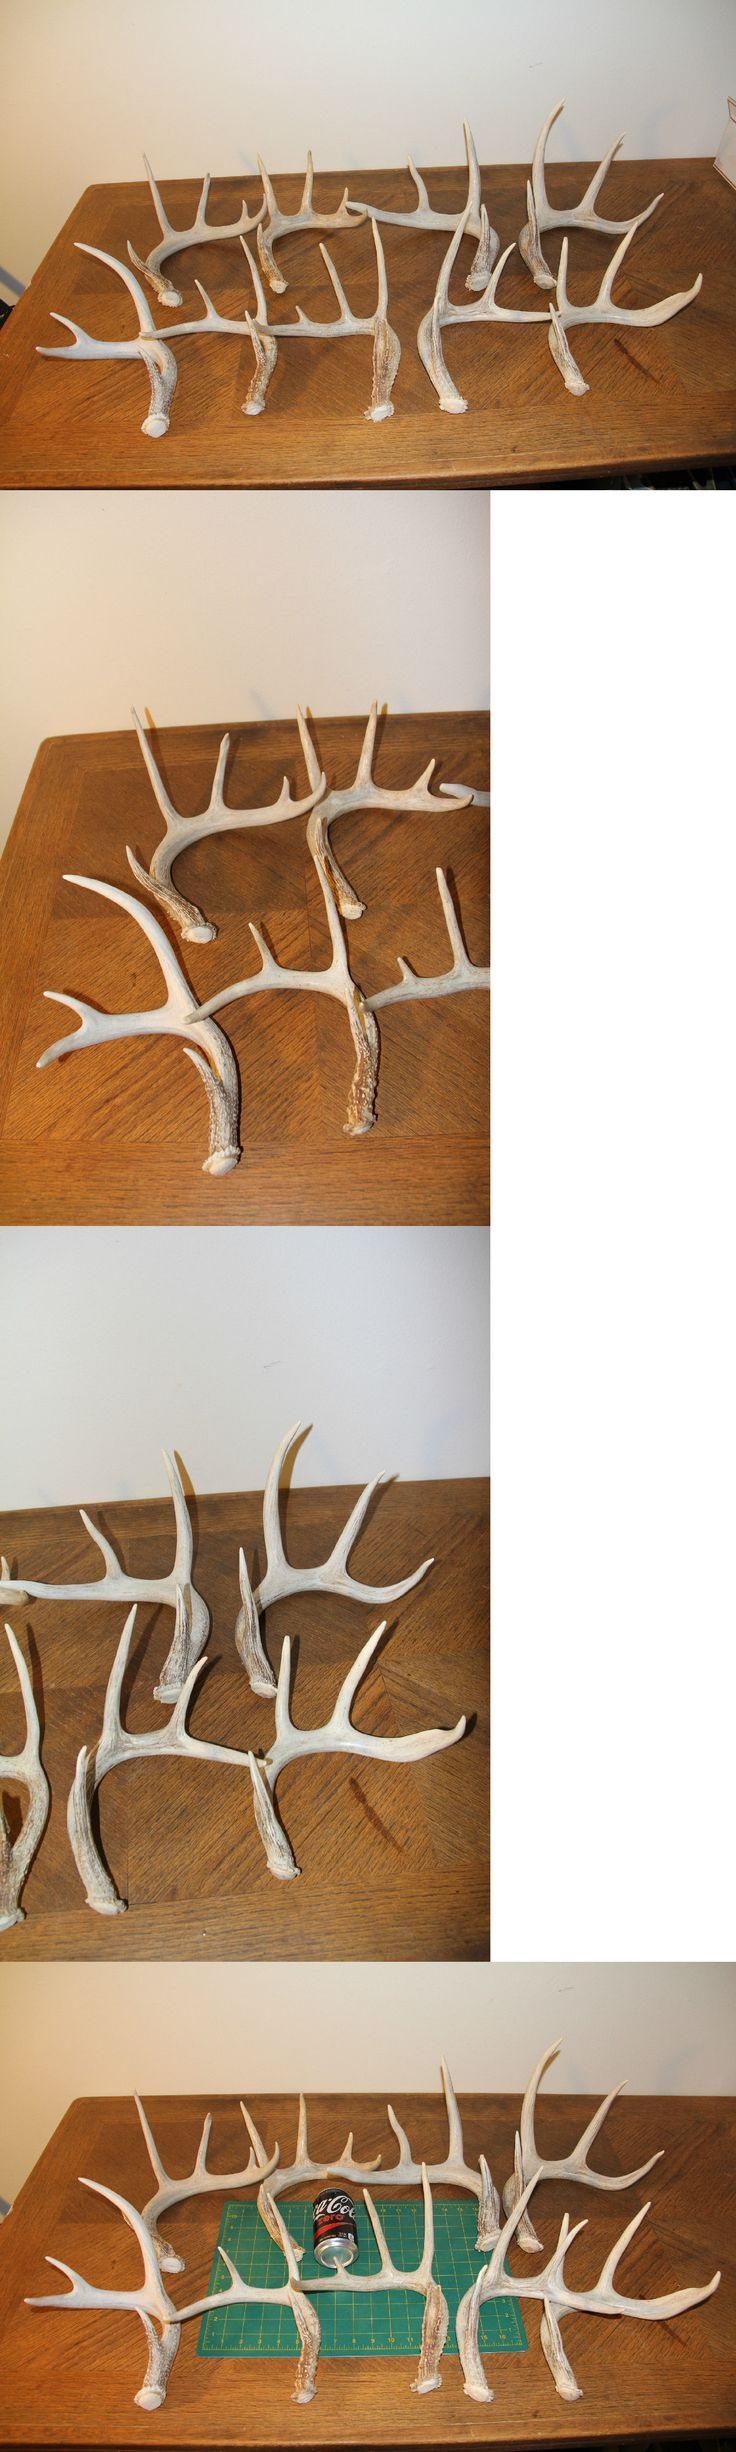 Large Animals 177908: 9 Beautiful Light Color Whitetail Deer Shed Antlers Sheds / Antler Mule Lot 121 BUY IT NOW ONLY: $165.0